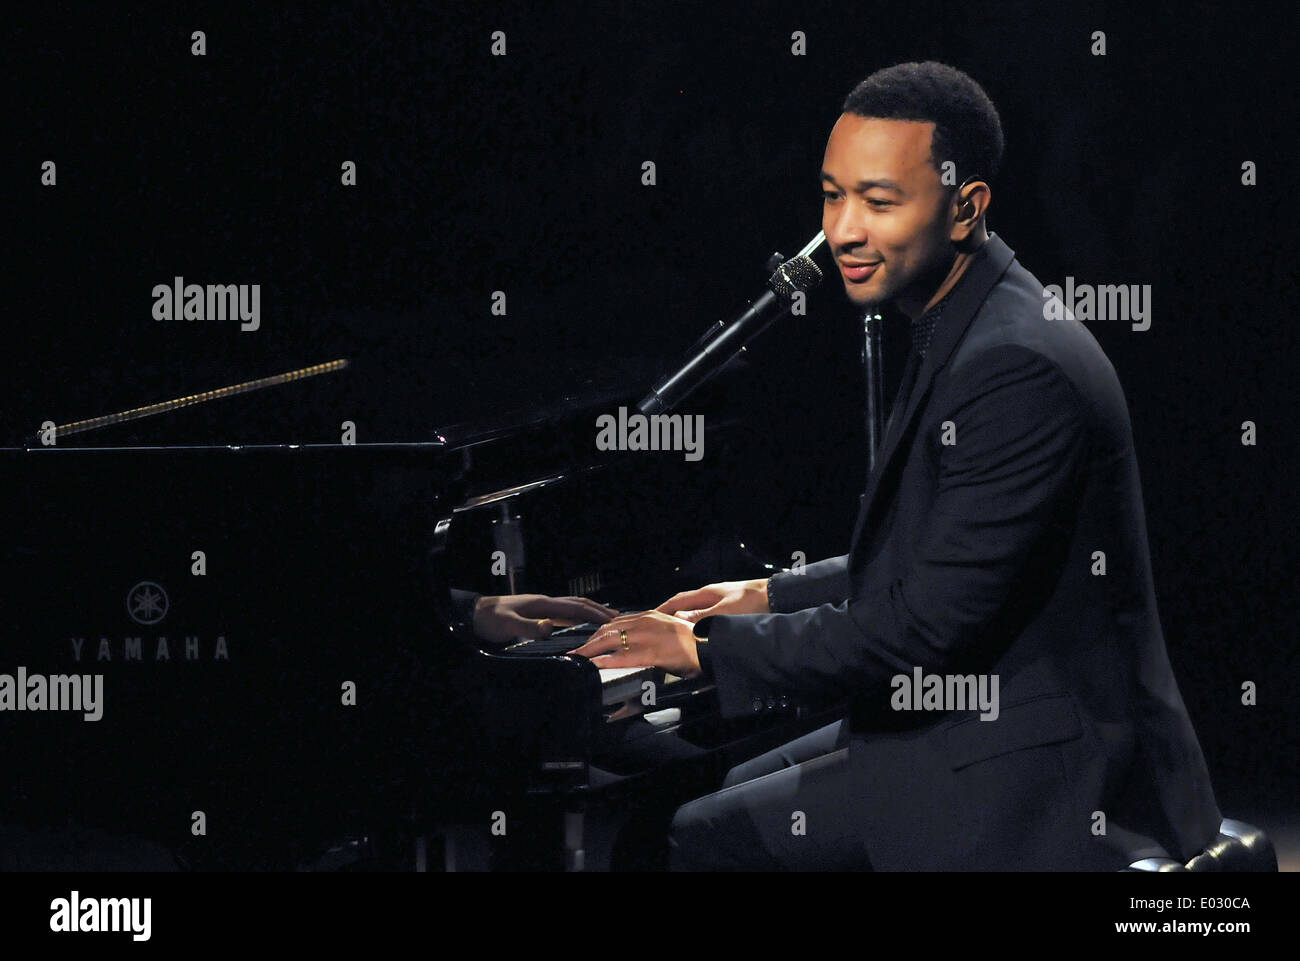 Melbourne, Florida, USA. 28 avril 2014. L'auteur-compositeur John Legend, un neuf Grammy Award Winner, effectue Banque D'Images